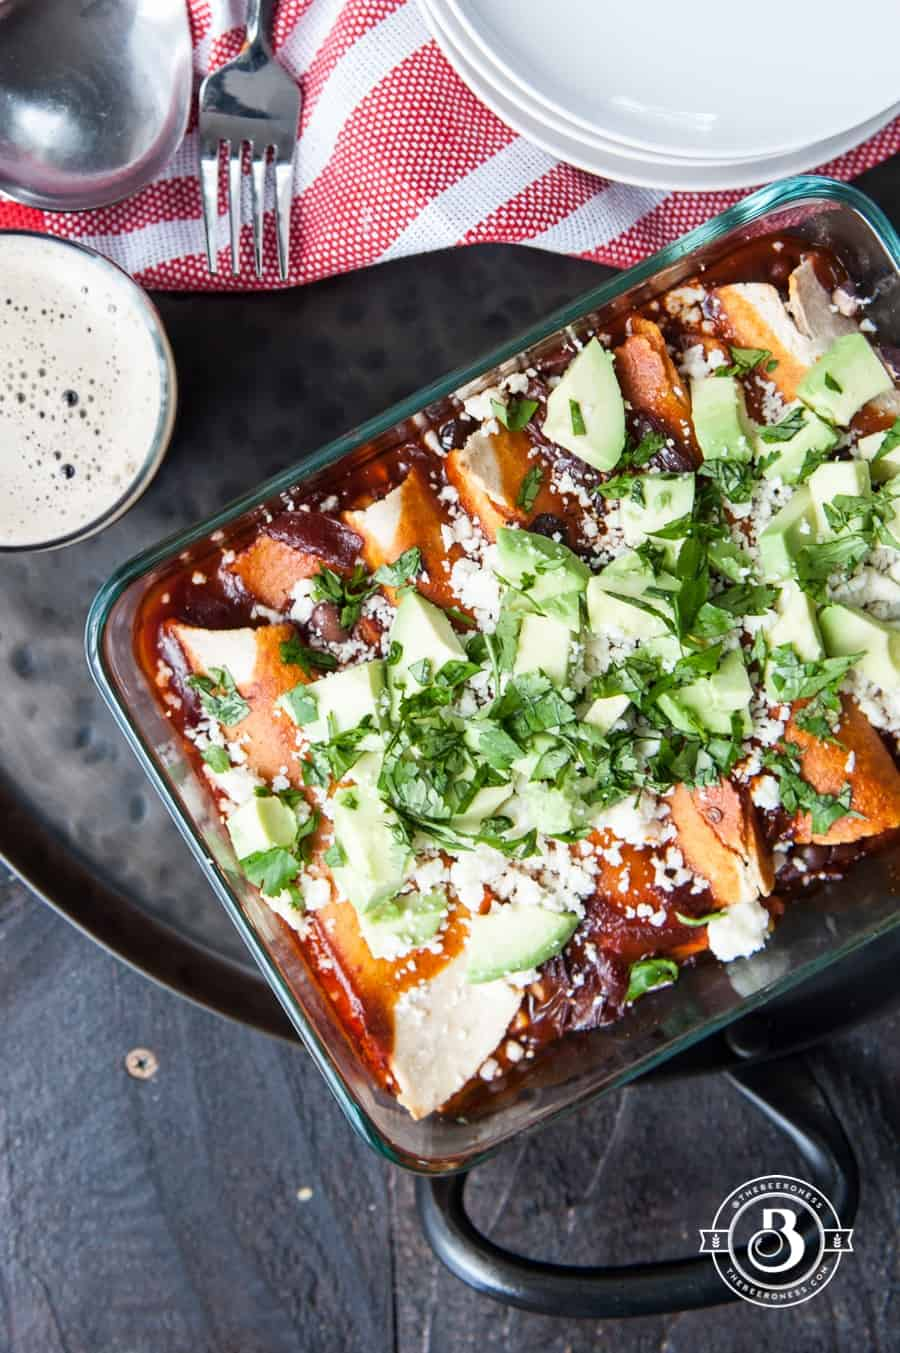 Corn-and-Black-Bean-Enchiladas-with-Chipotle-Stout-Red-Sauce-8